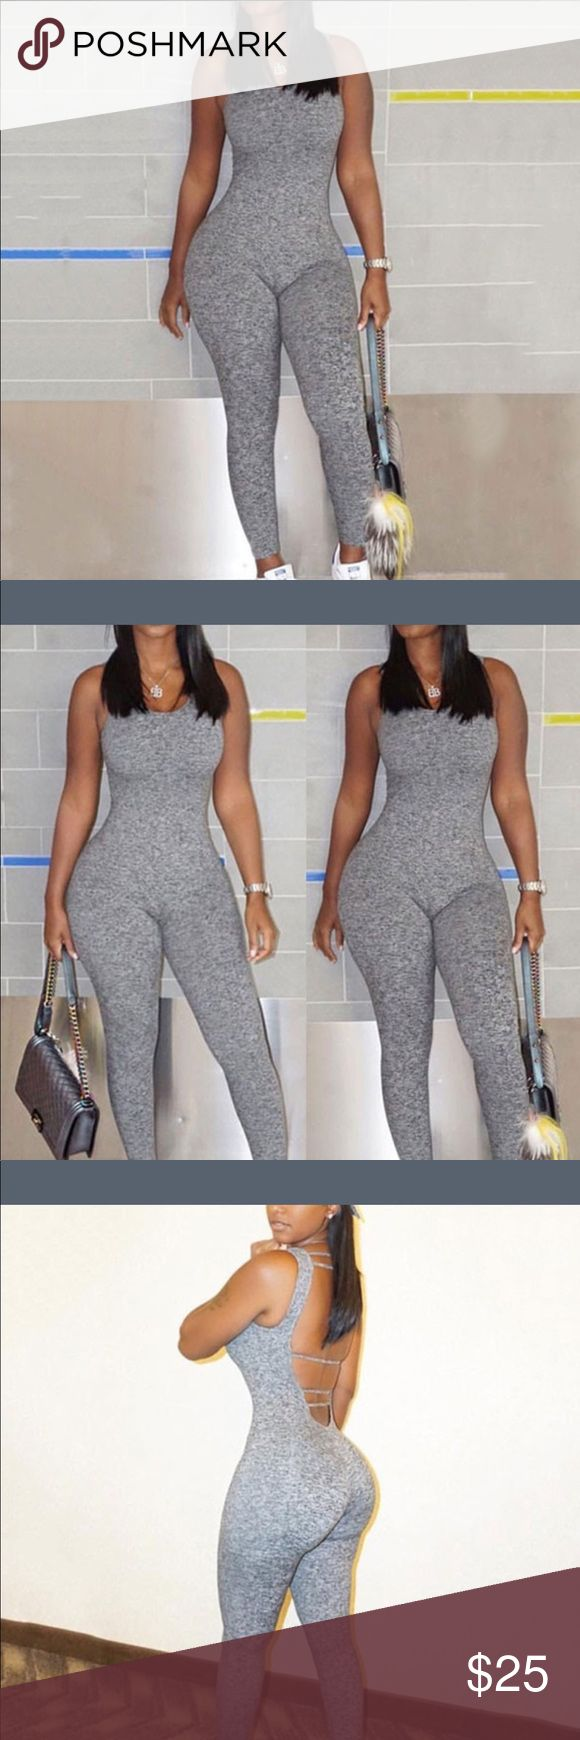 Brand new one piece Very sexy Bernice Burgos one piece Pants Jumpsuits & Rompers